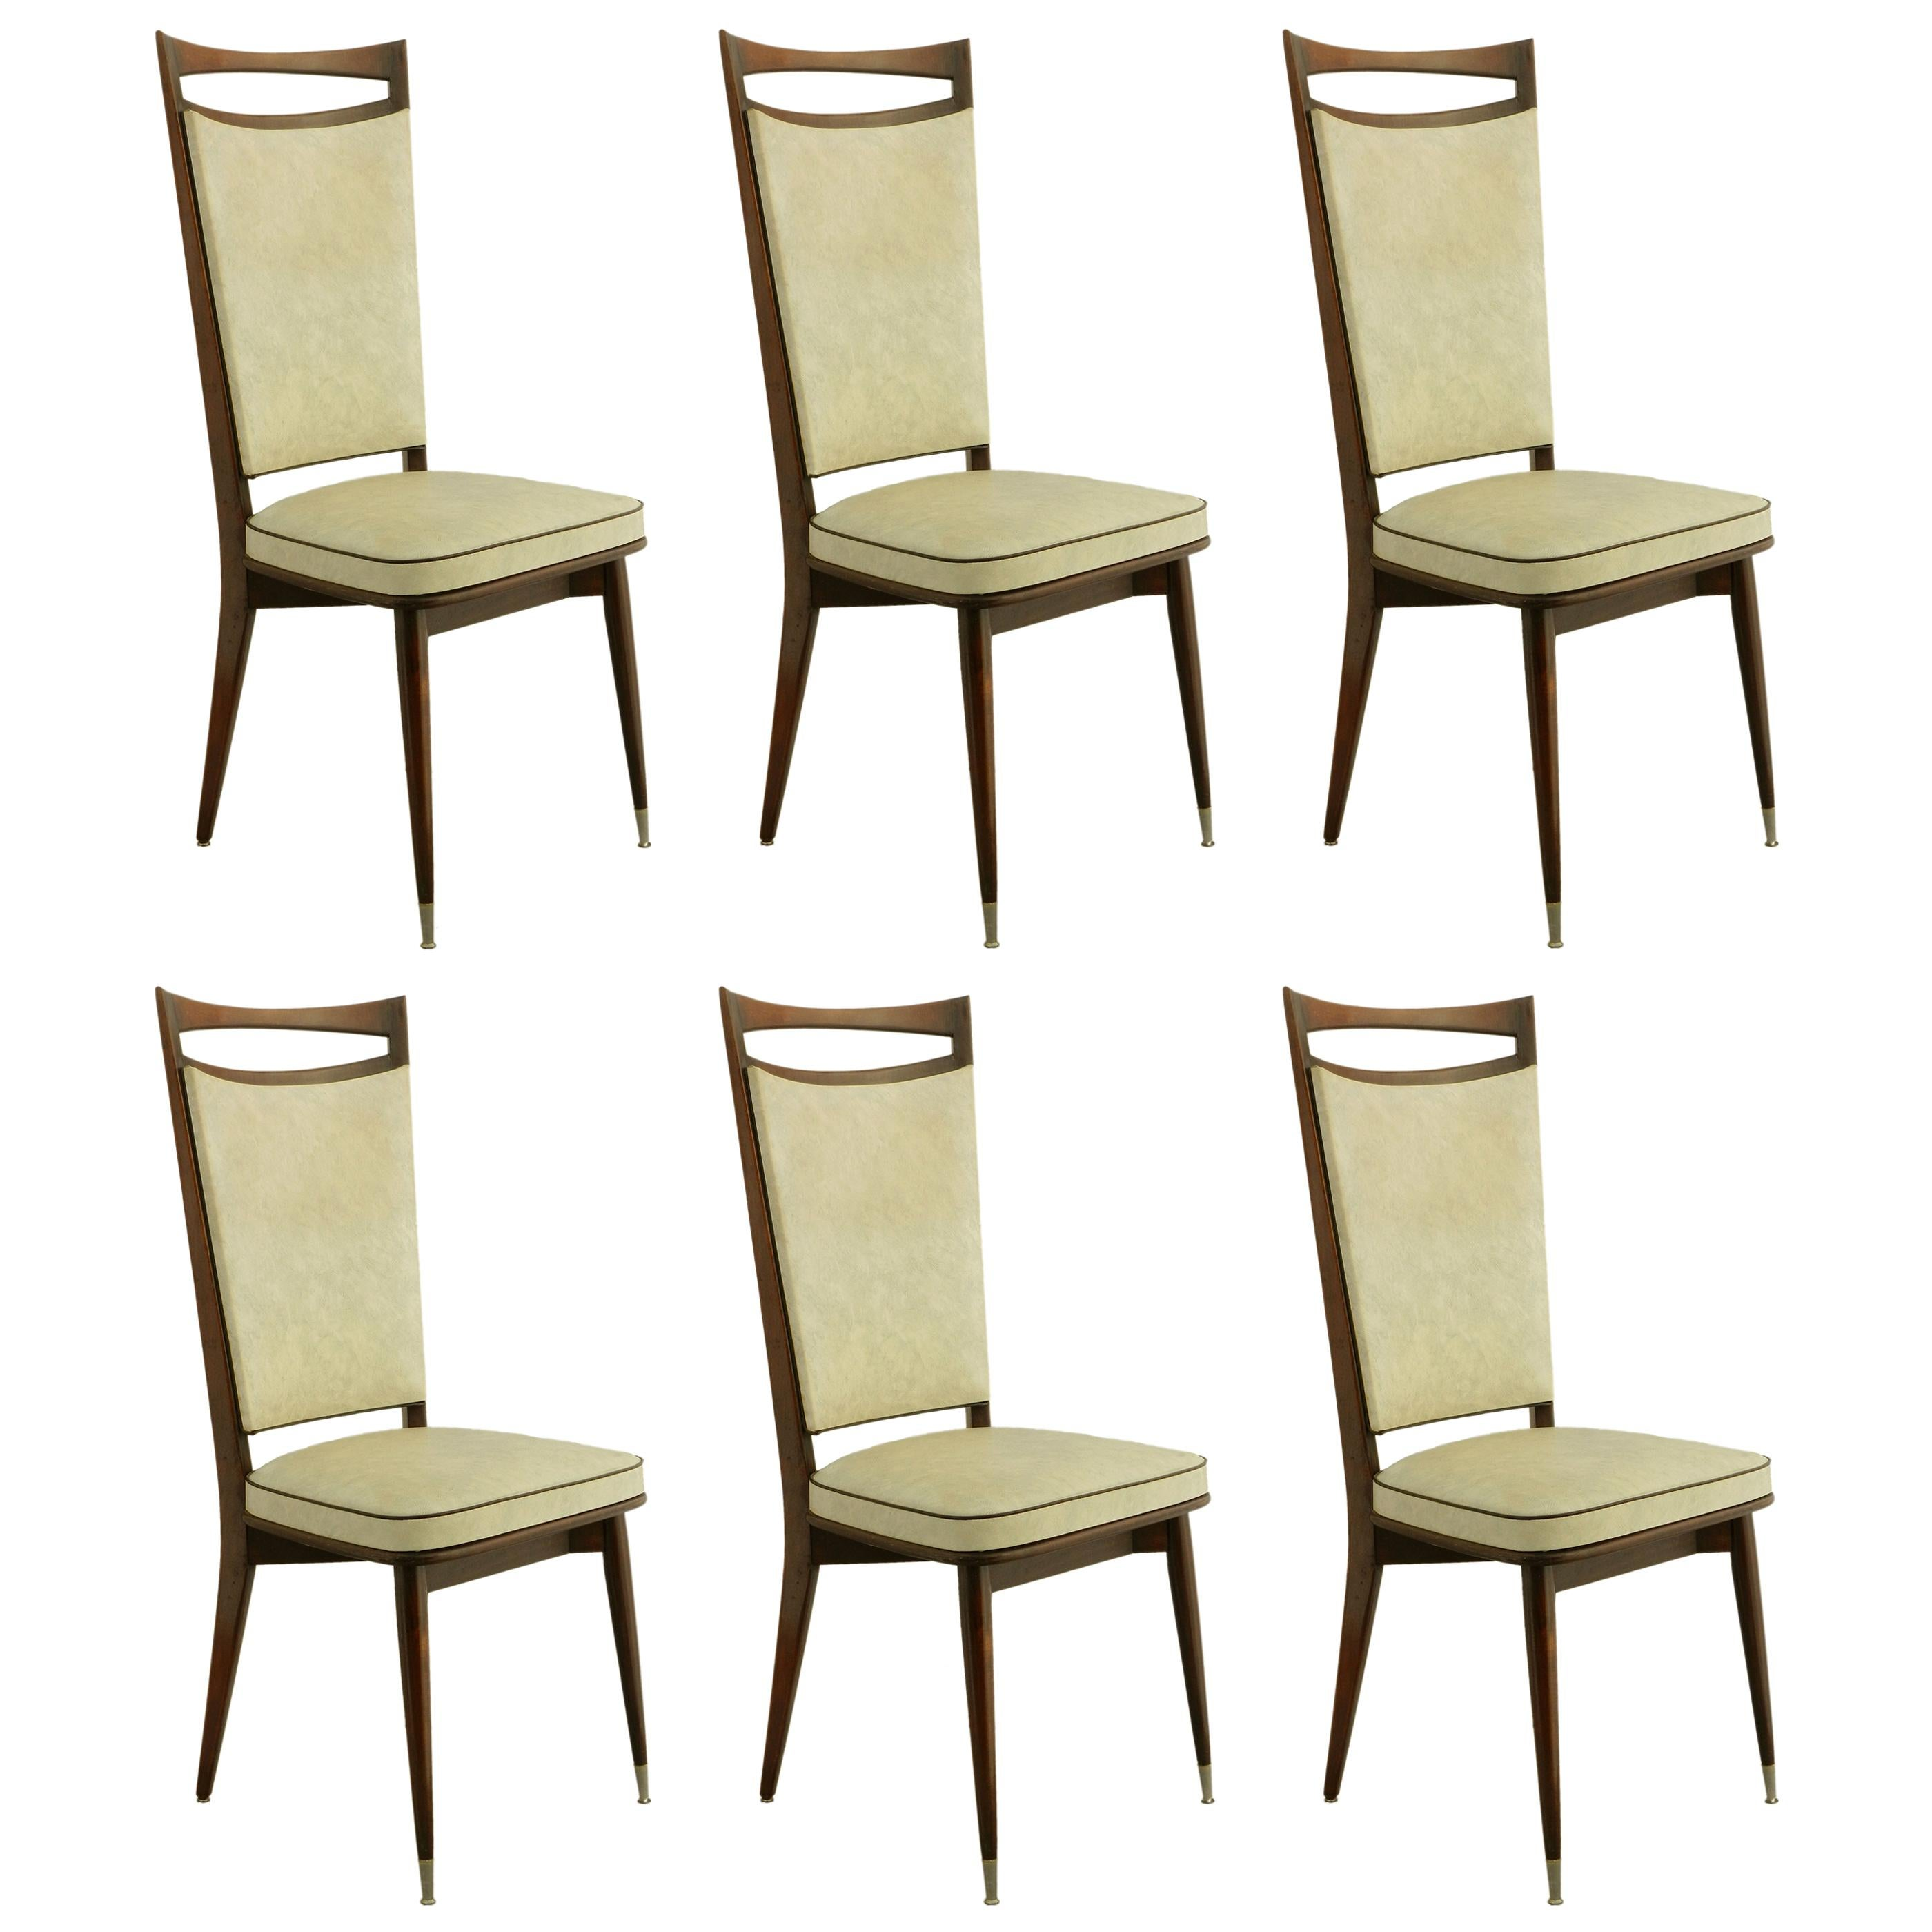 Six Dining Chairs circa 1960 Upholstered Midcentury